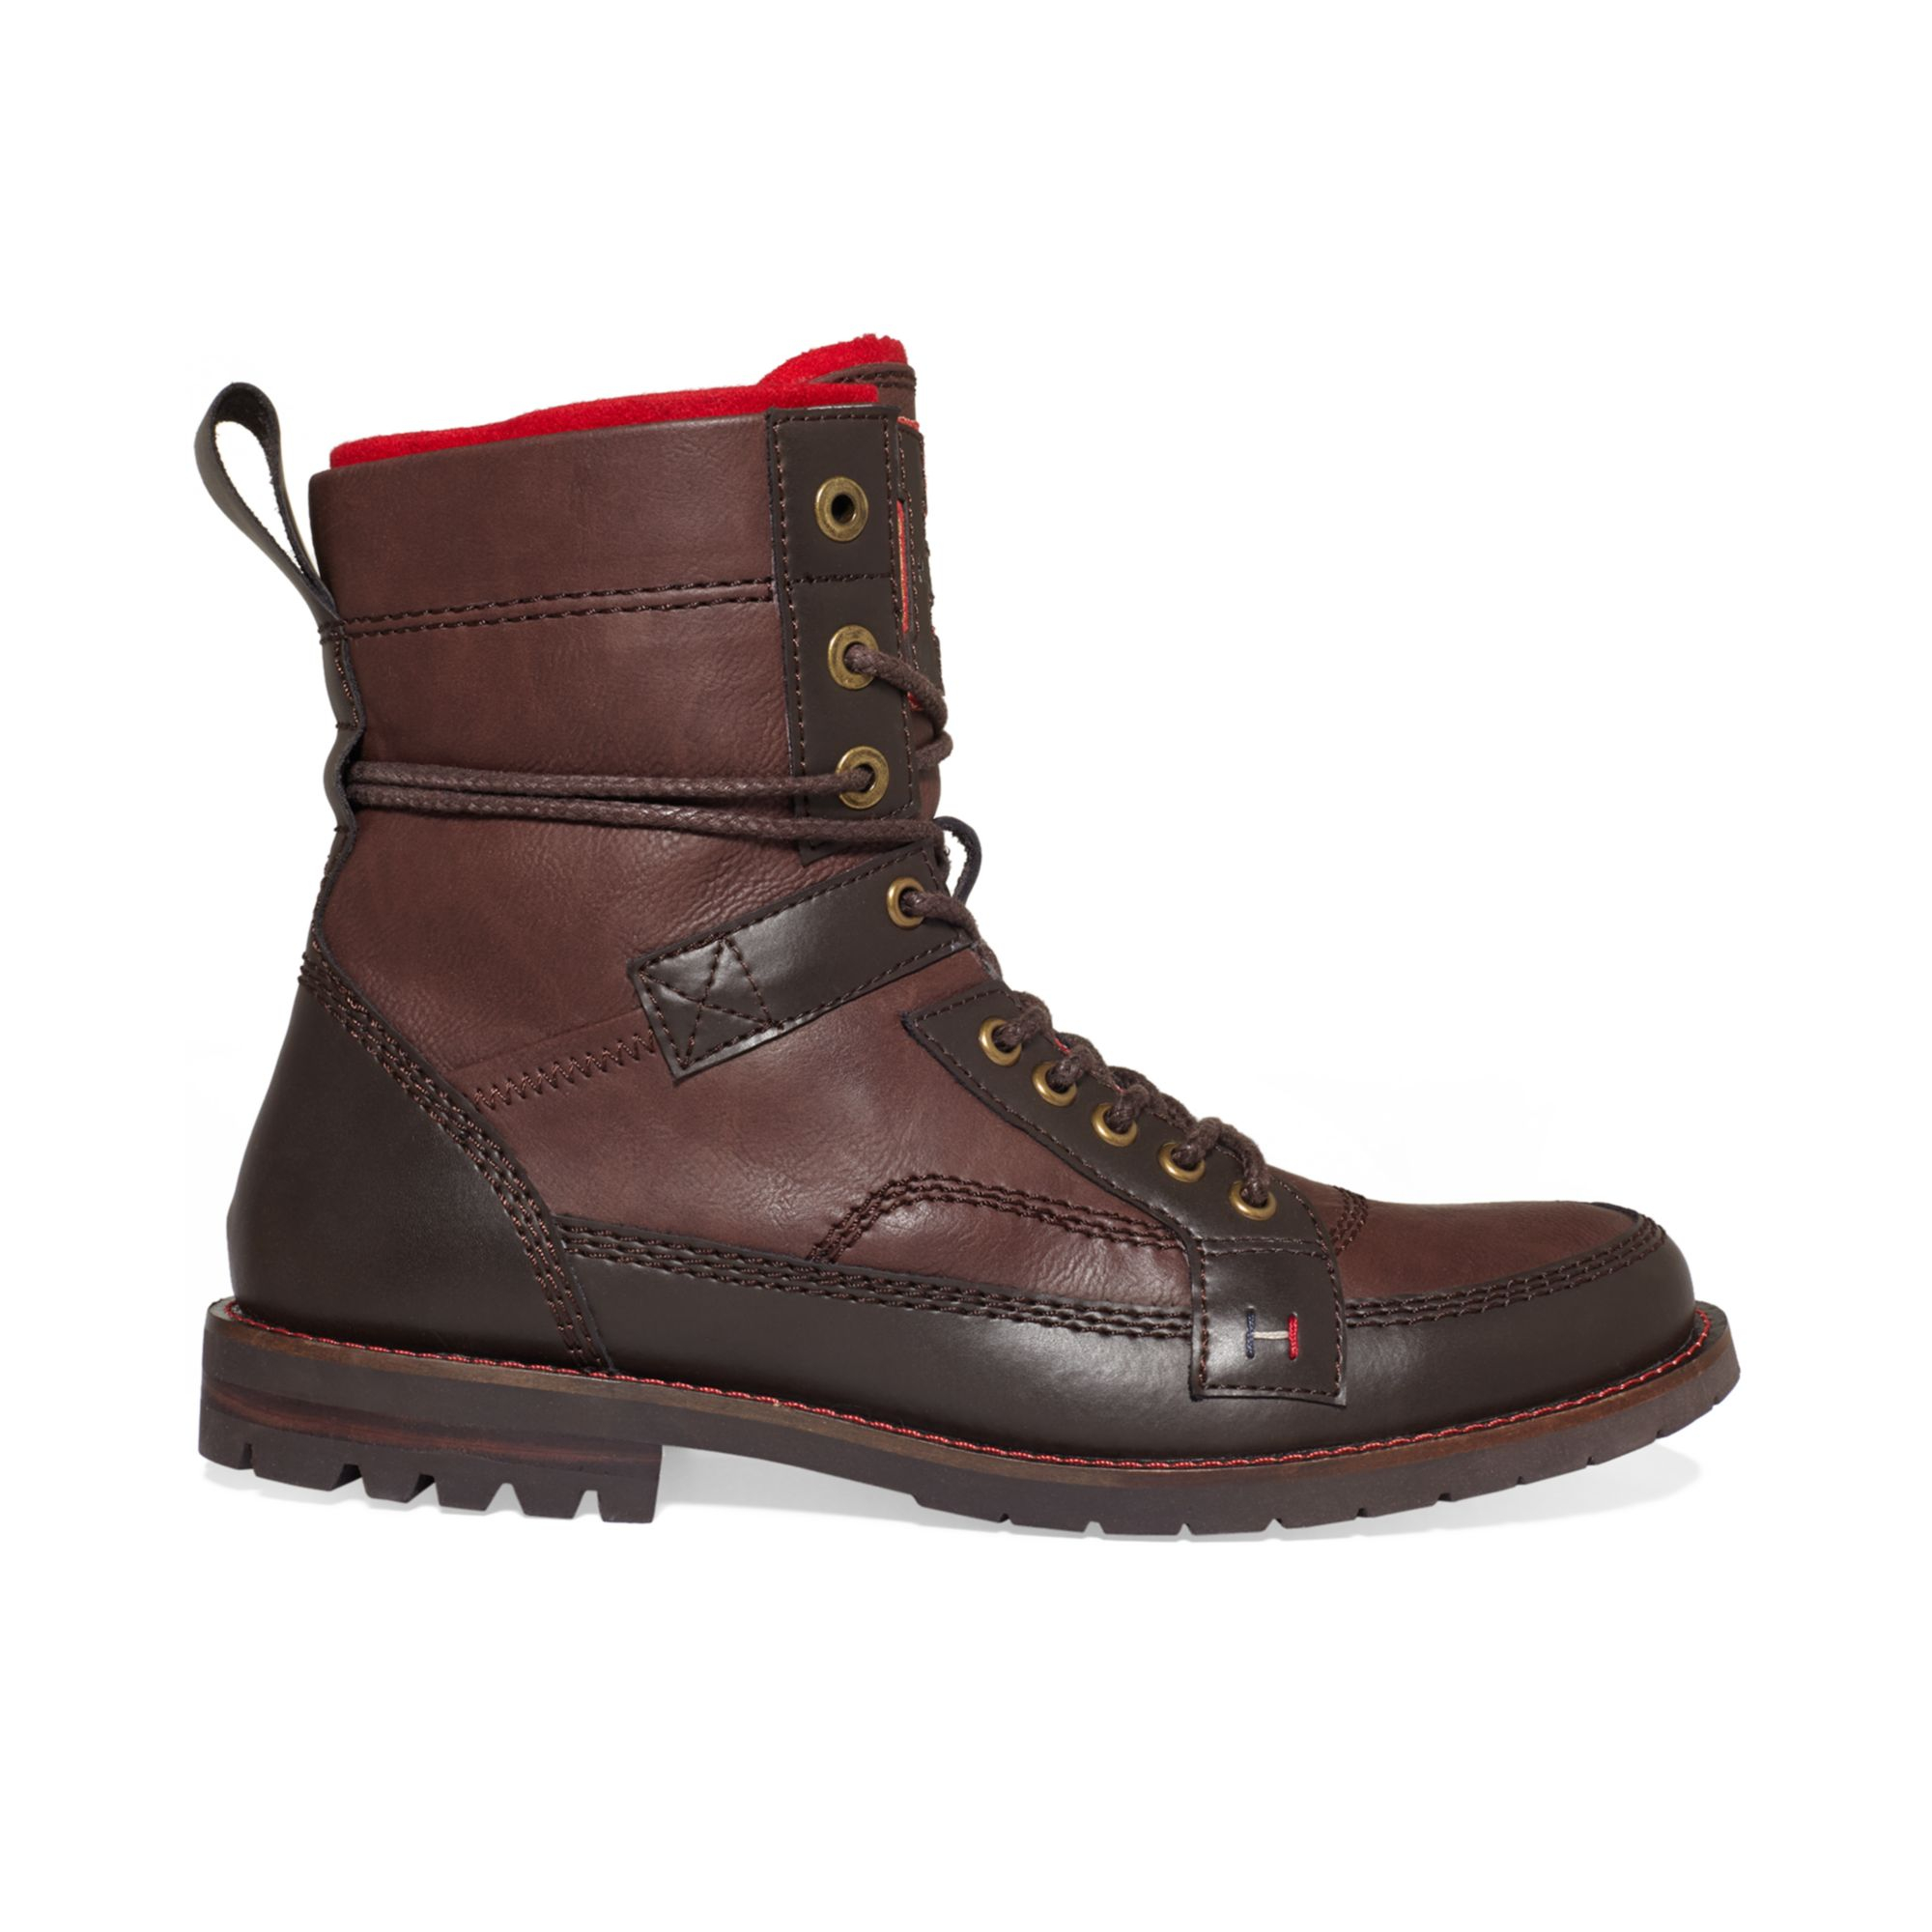 Tommy Hilfiger Brutus Boots In Brown For Men Lyst